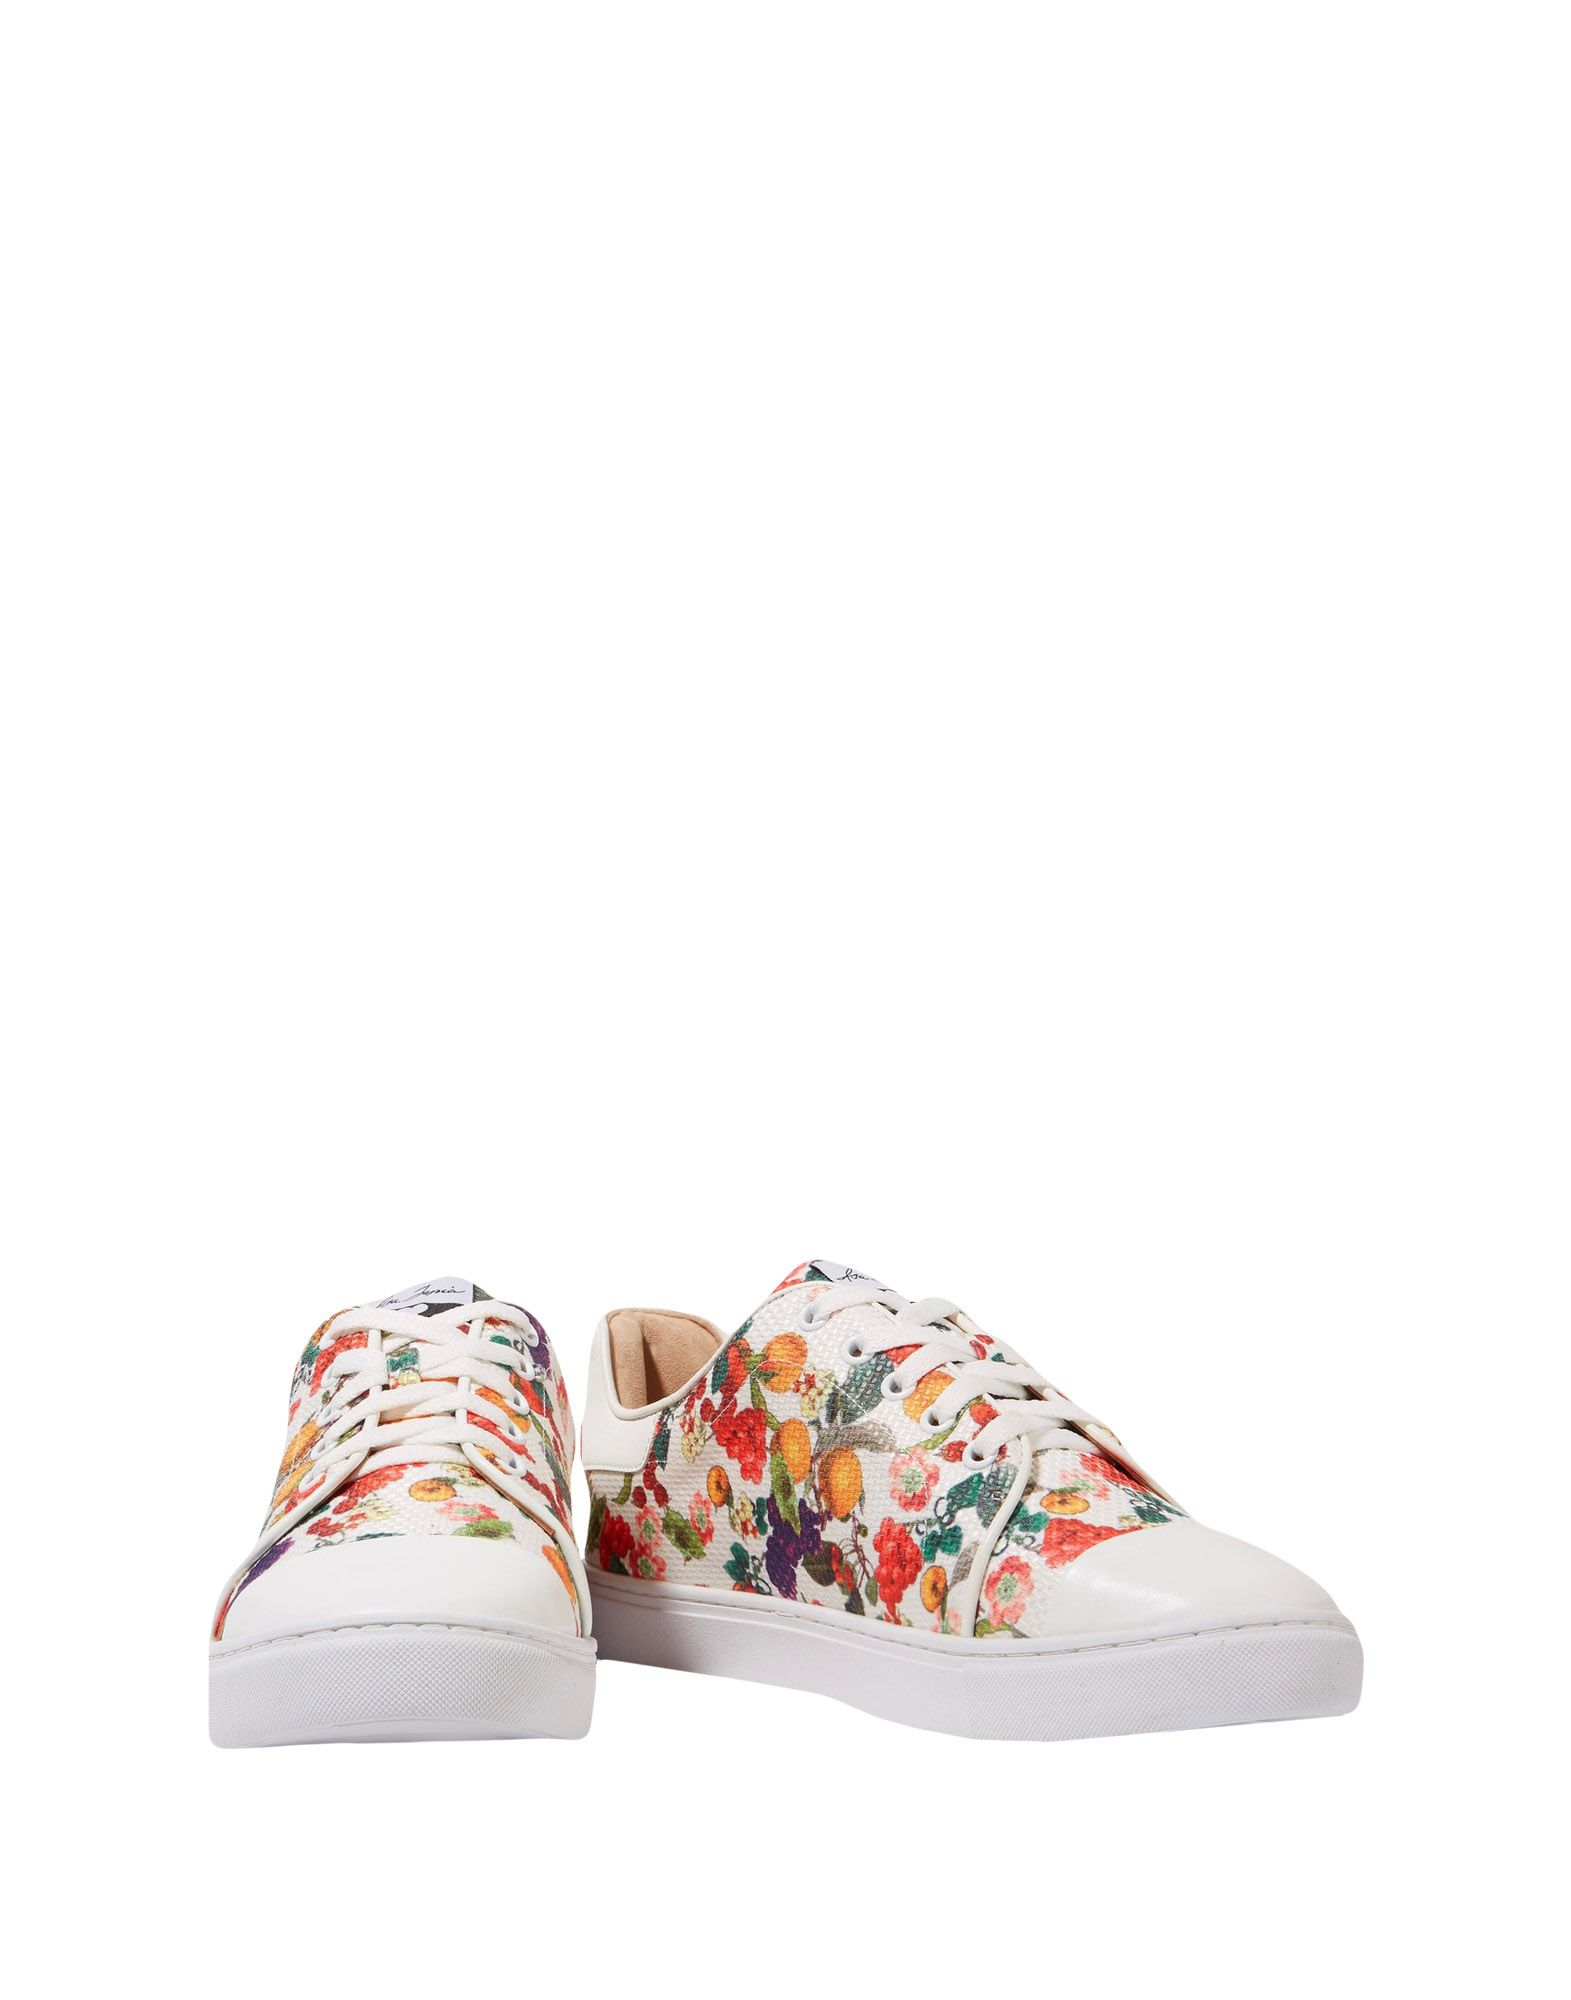 Sneakers Isa Tapia Donna - 11526914WQ